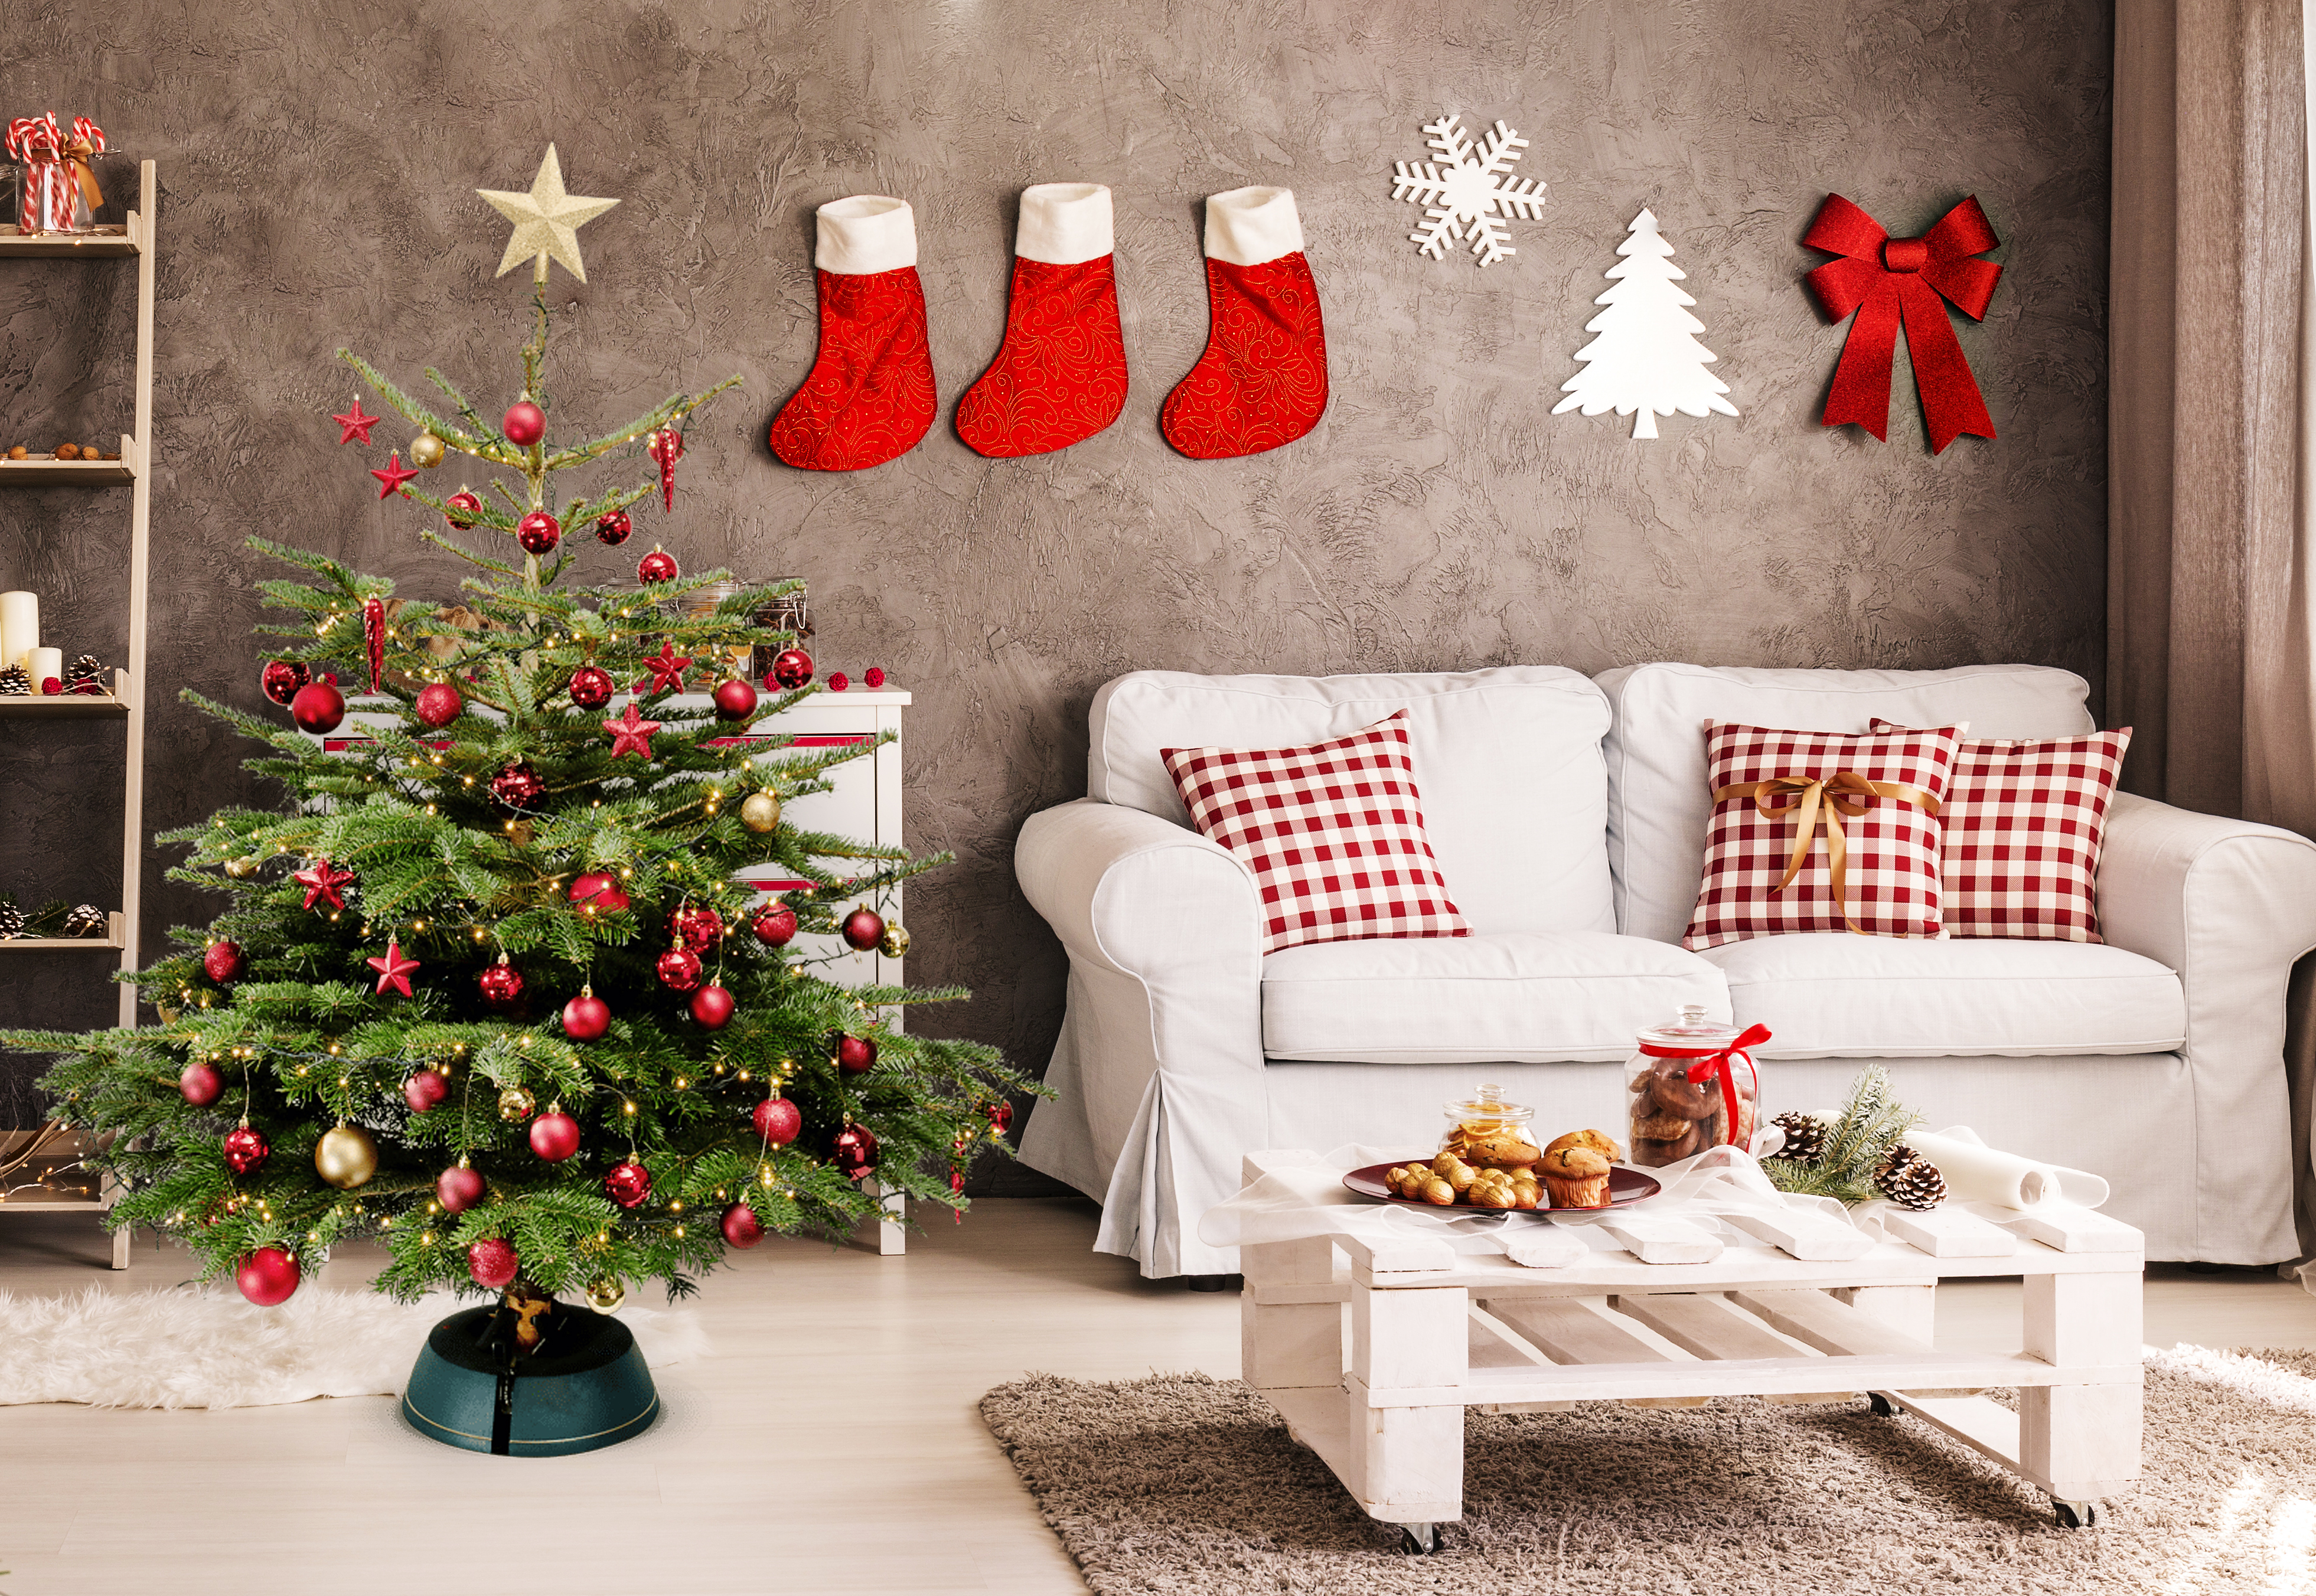 schleppen ad fleurop liefert weihnachtsb ume inklusive schmuck an die haust r. Black Bedroom Furniture Sets. Home Design Ideas